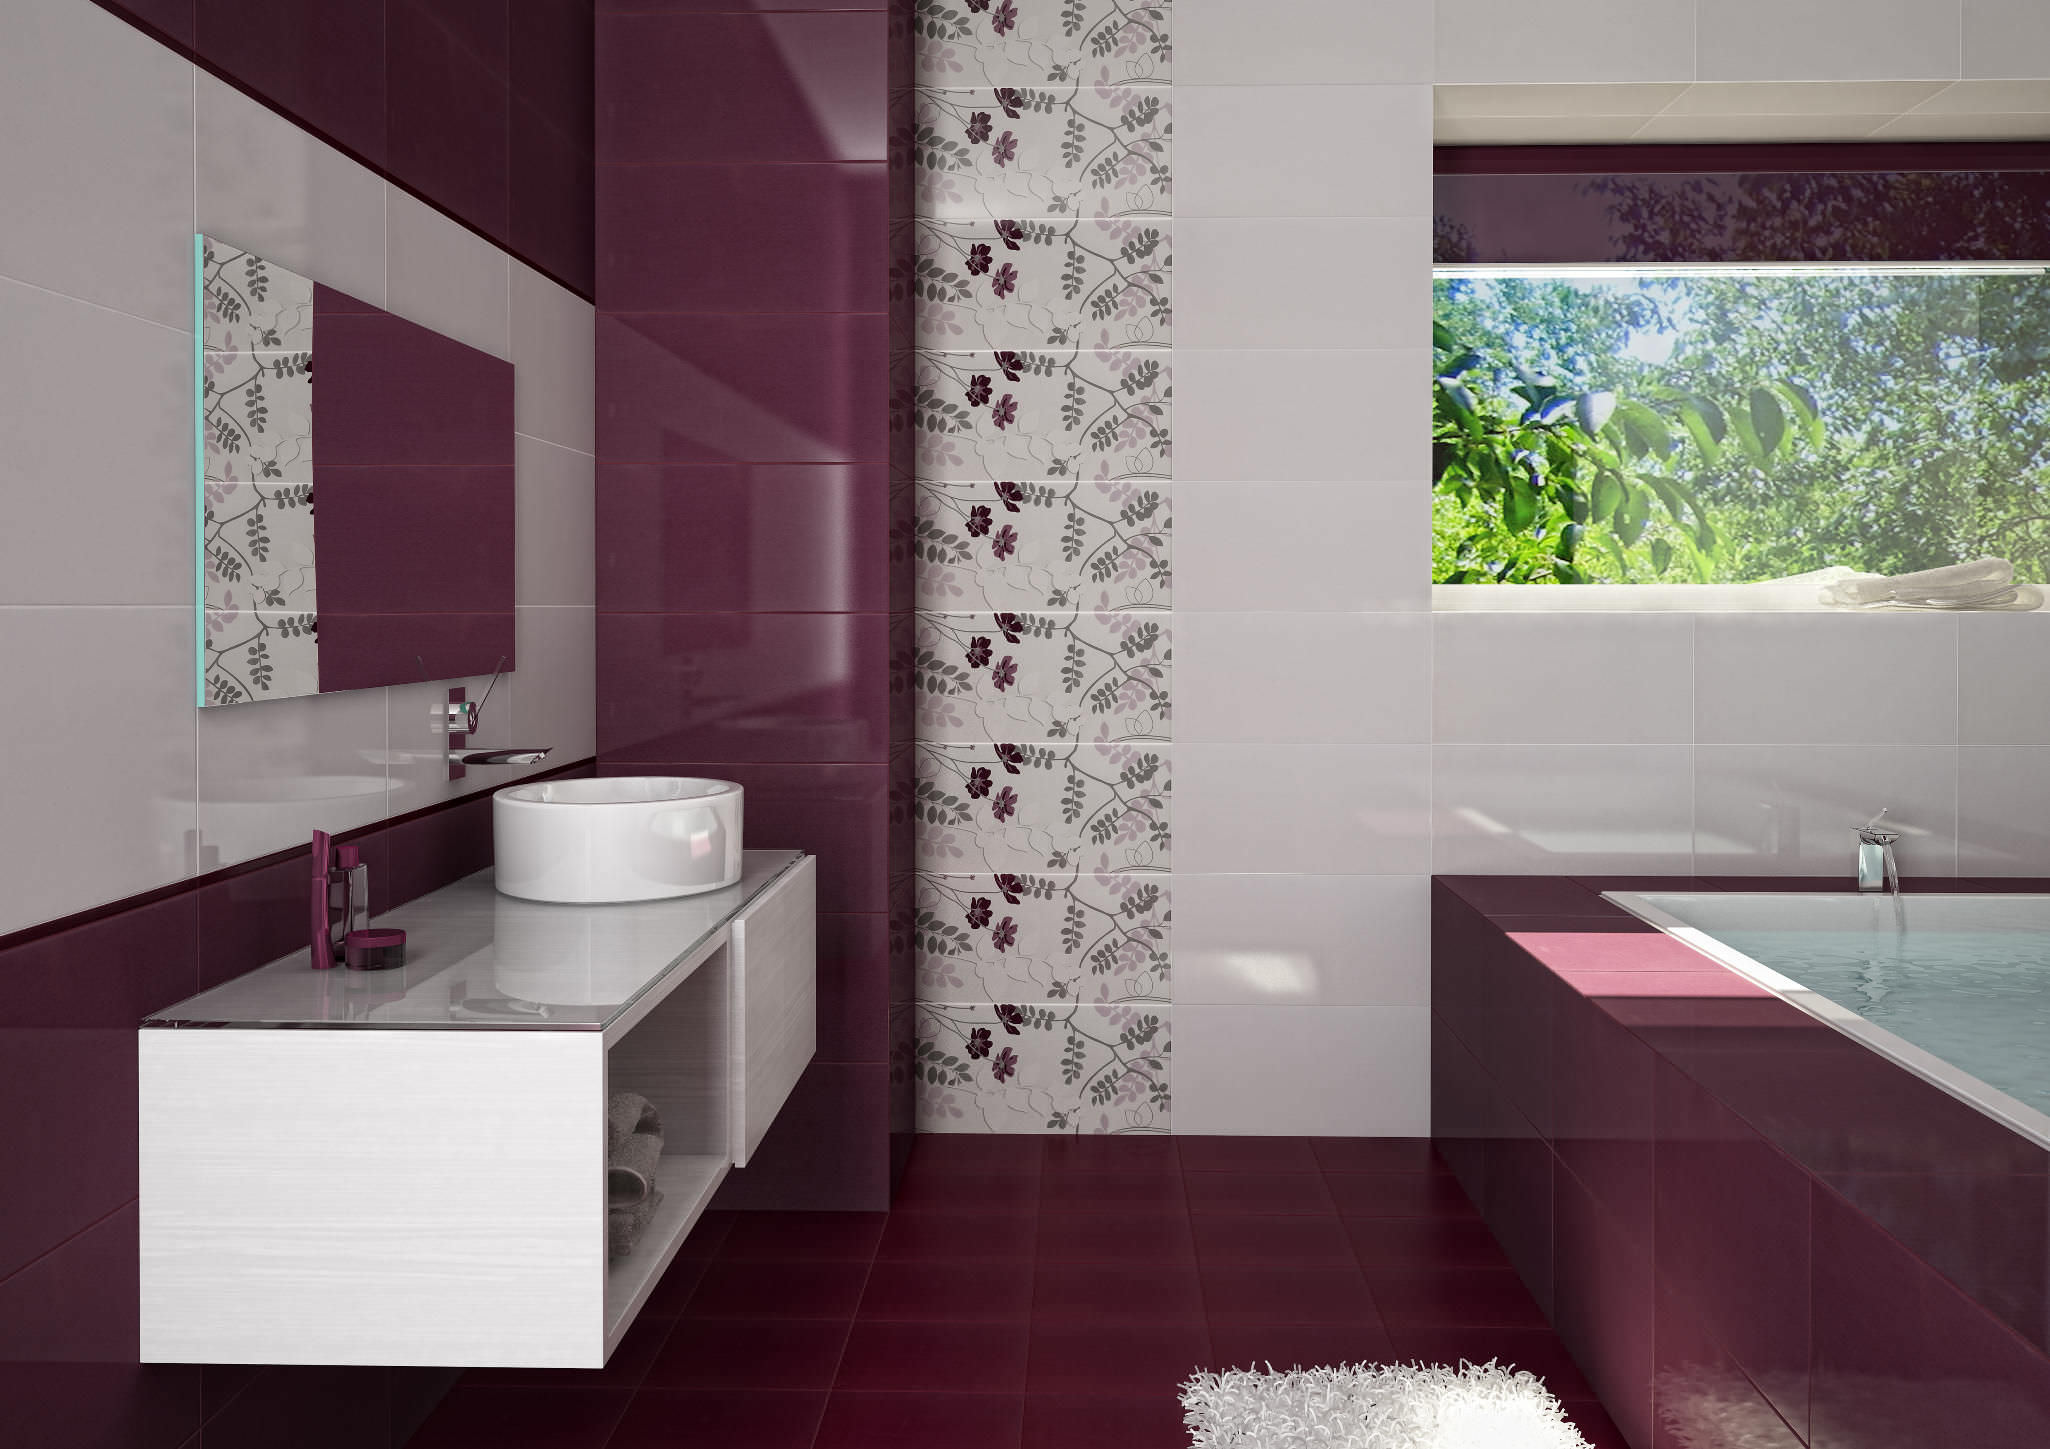 vastu for home interiors: 10 tips to make the bathroom your sanctuary